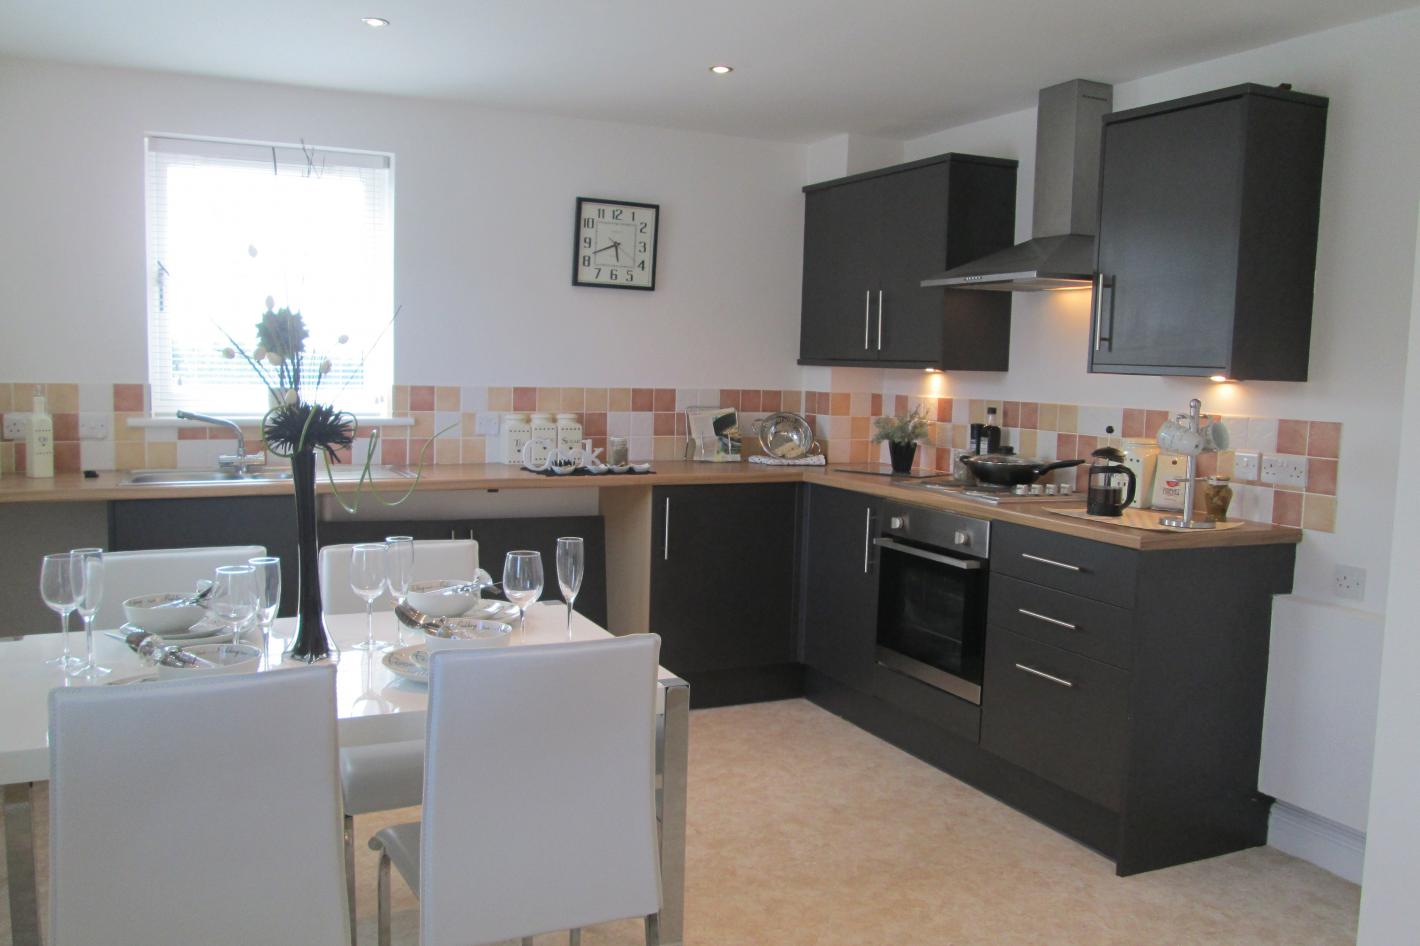 kitchen, dining area, glass table, white chairs, black cupboards, built in oven, white worktops, white walls